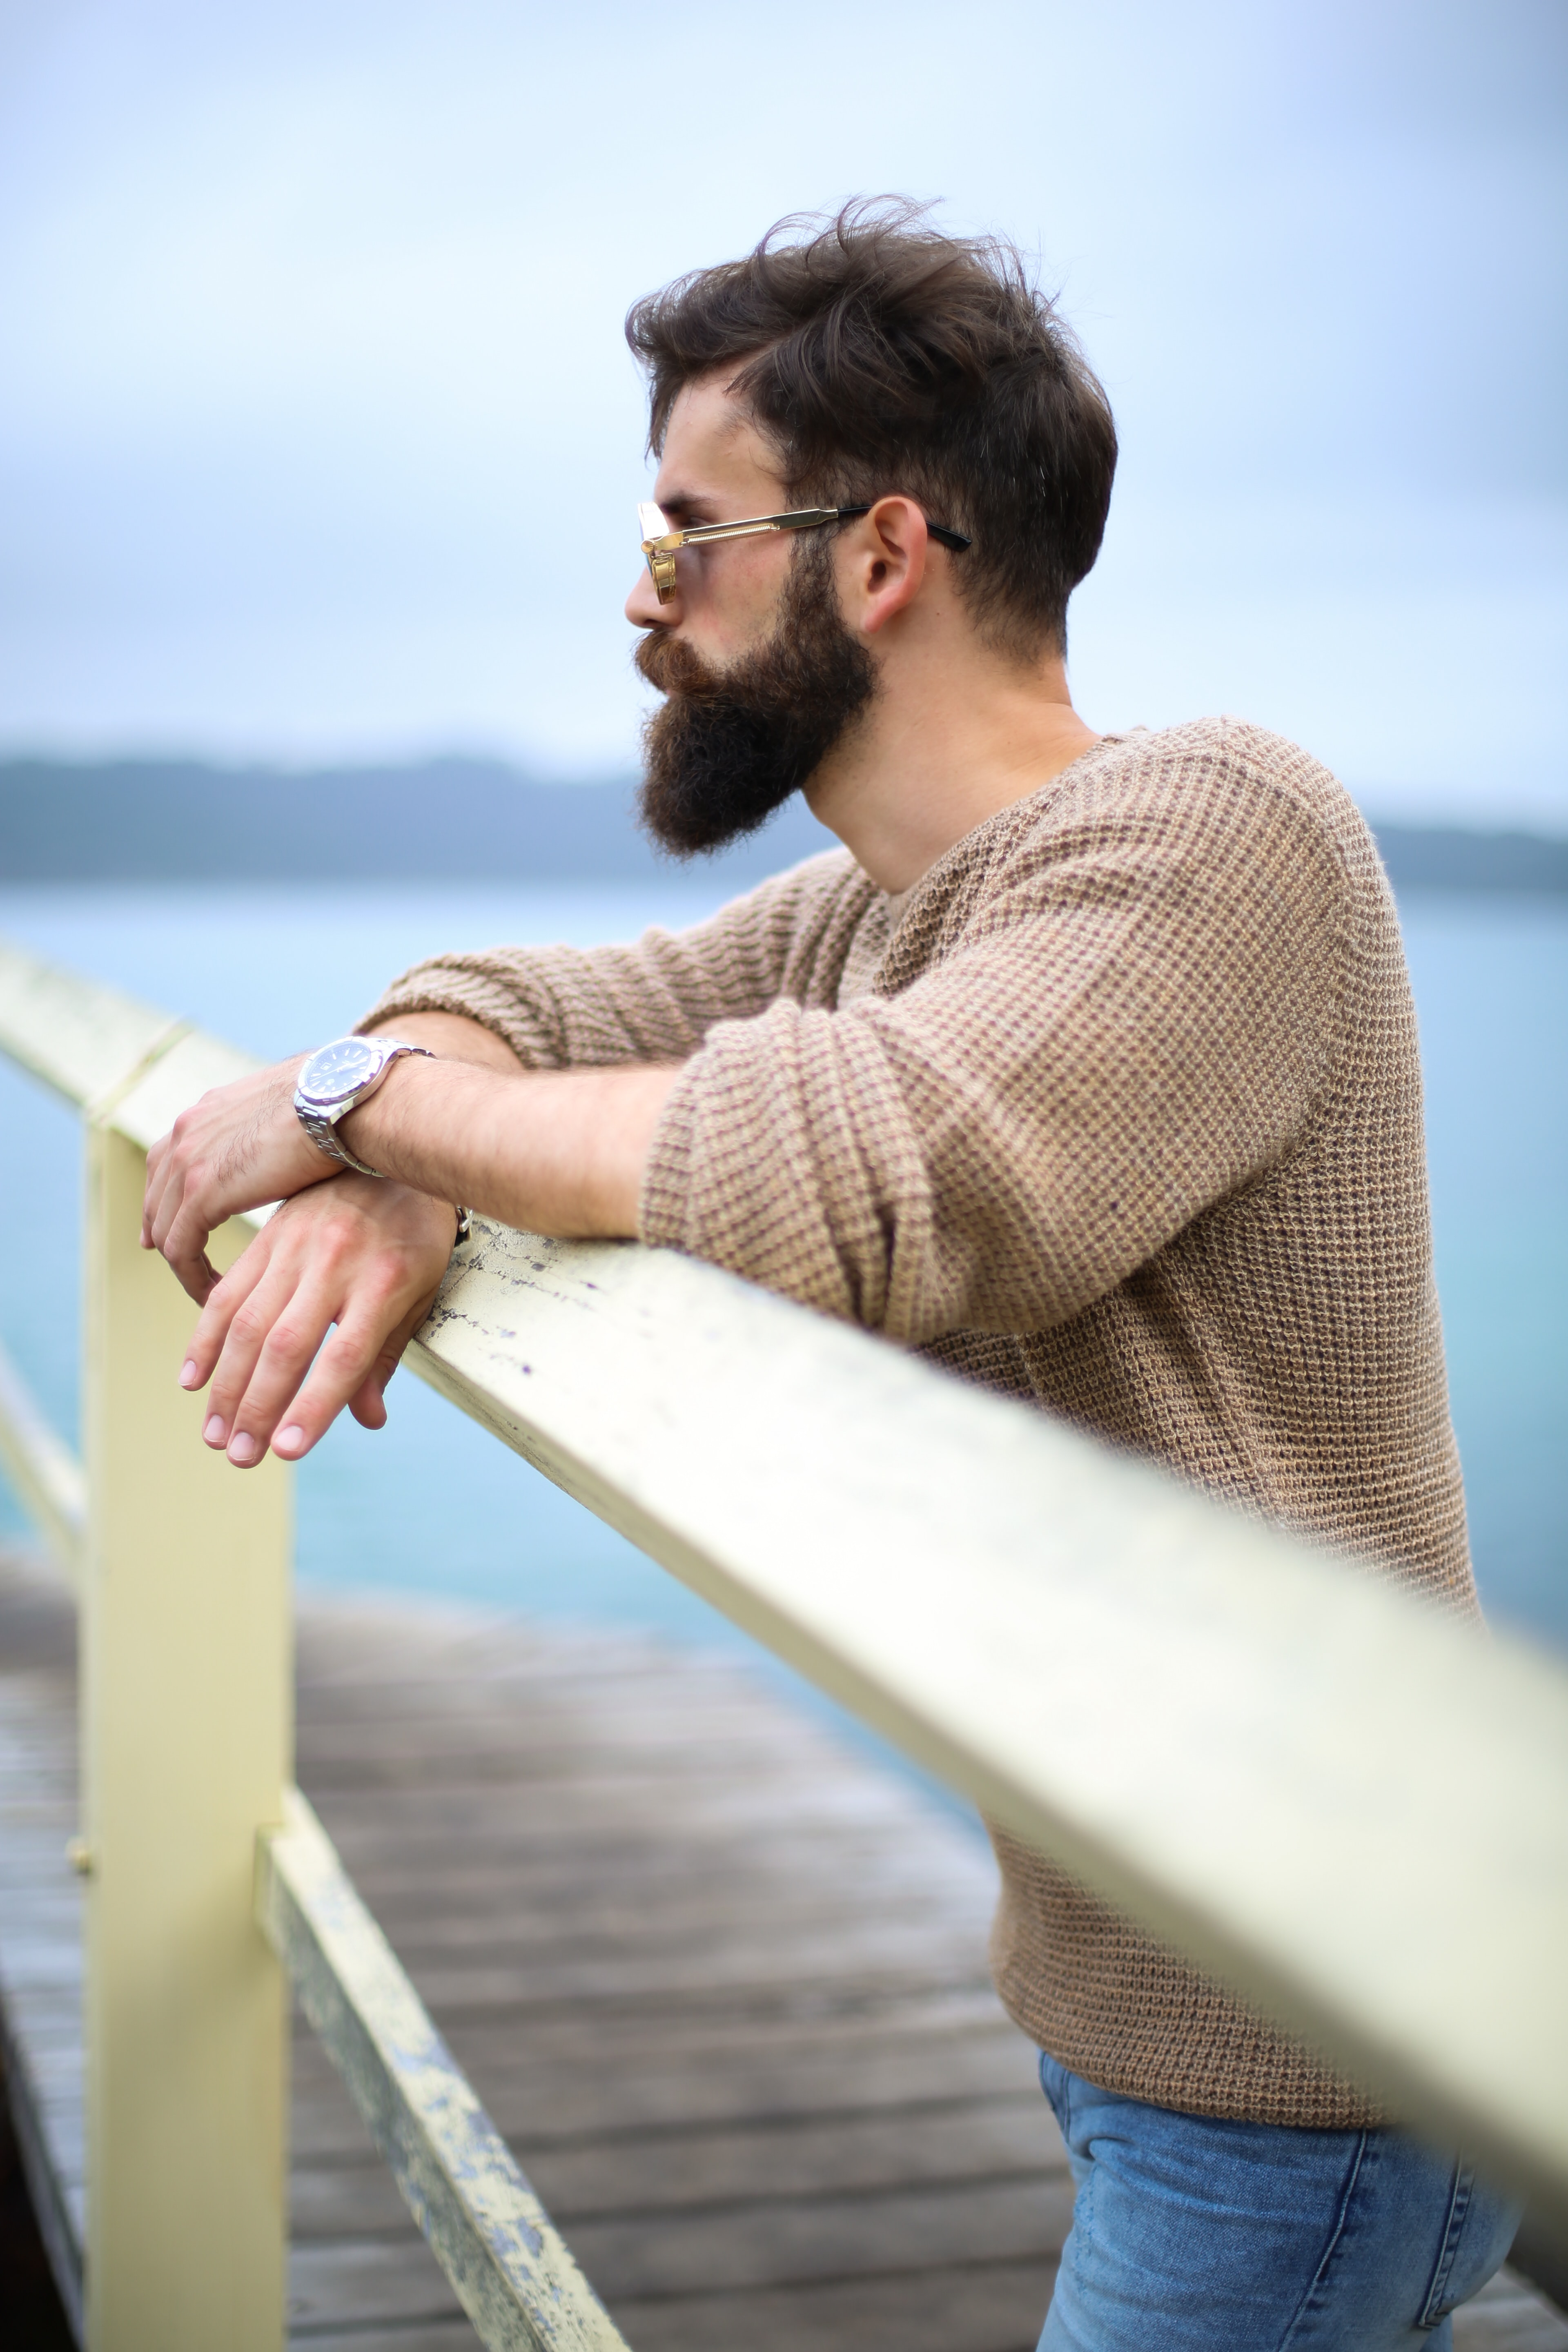 man wearing brown sweater standing on wooden dock